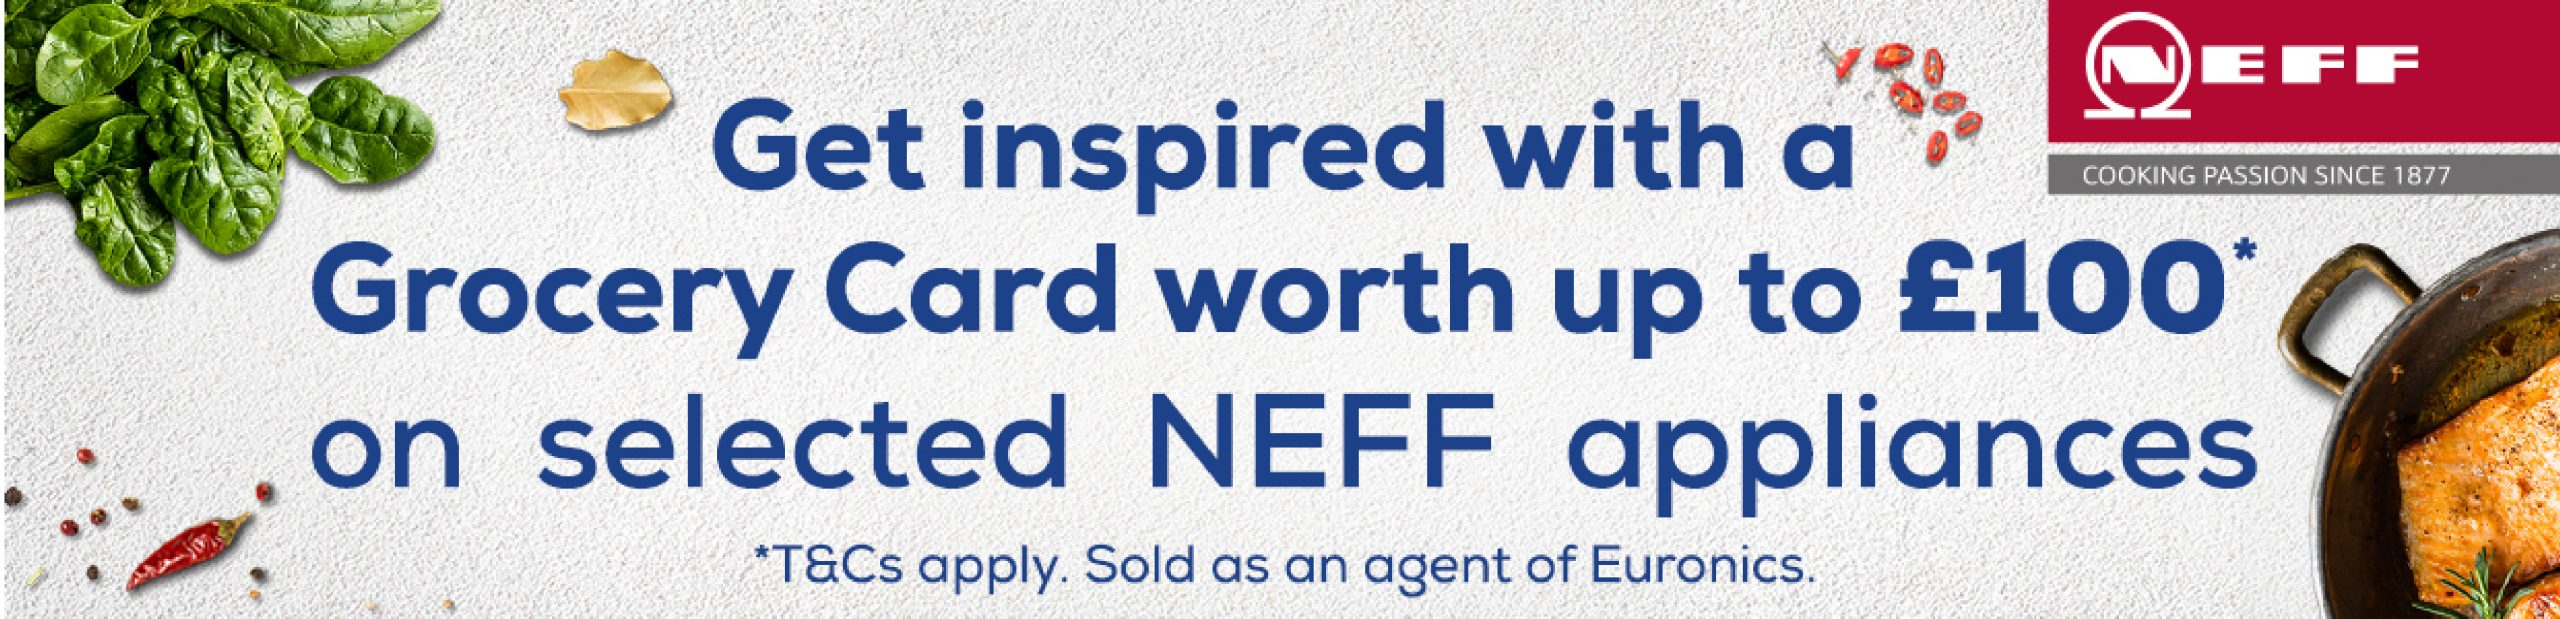 Neff grocery card worth up to £100 promotion